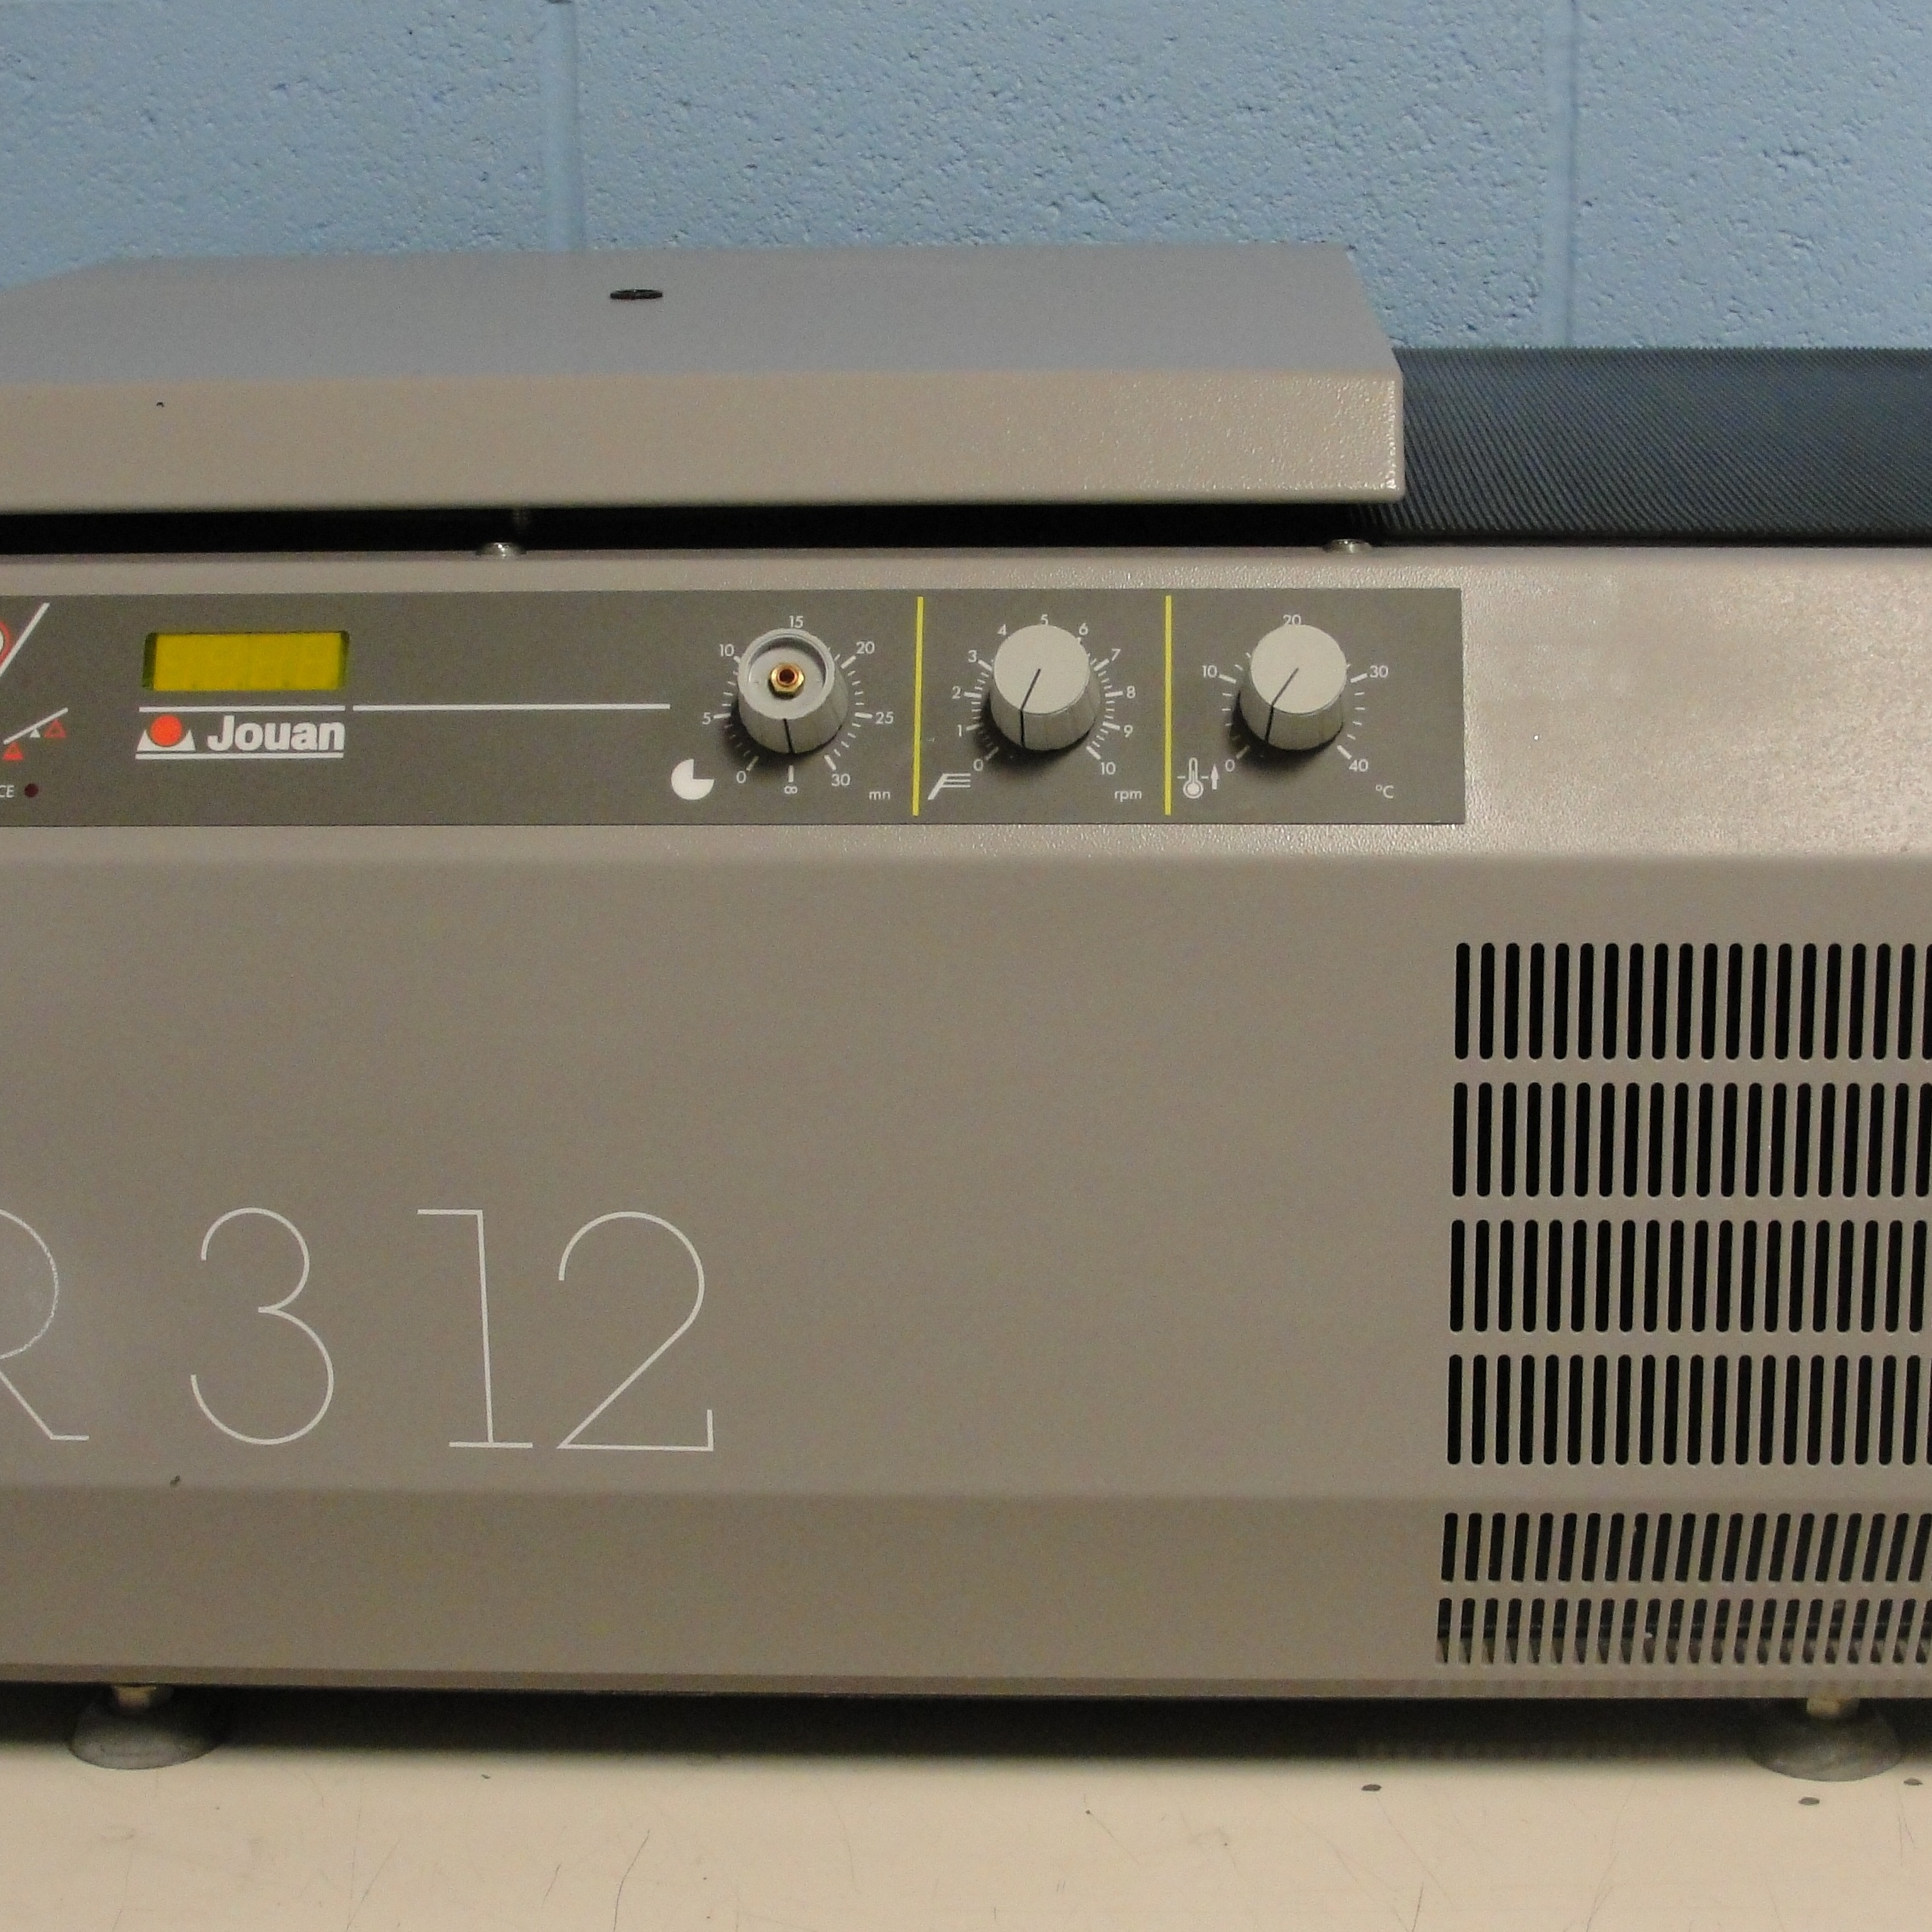 Jouan CR312 Refrigerated Bench-top Centrifuge Image